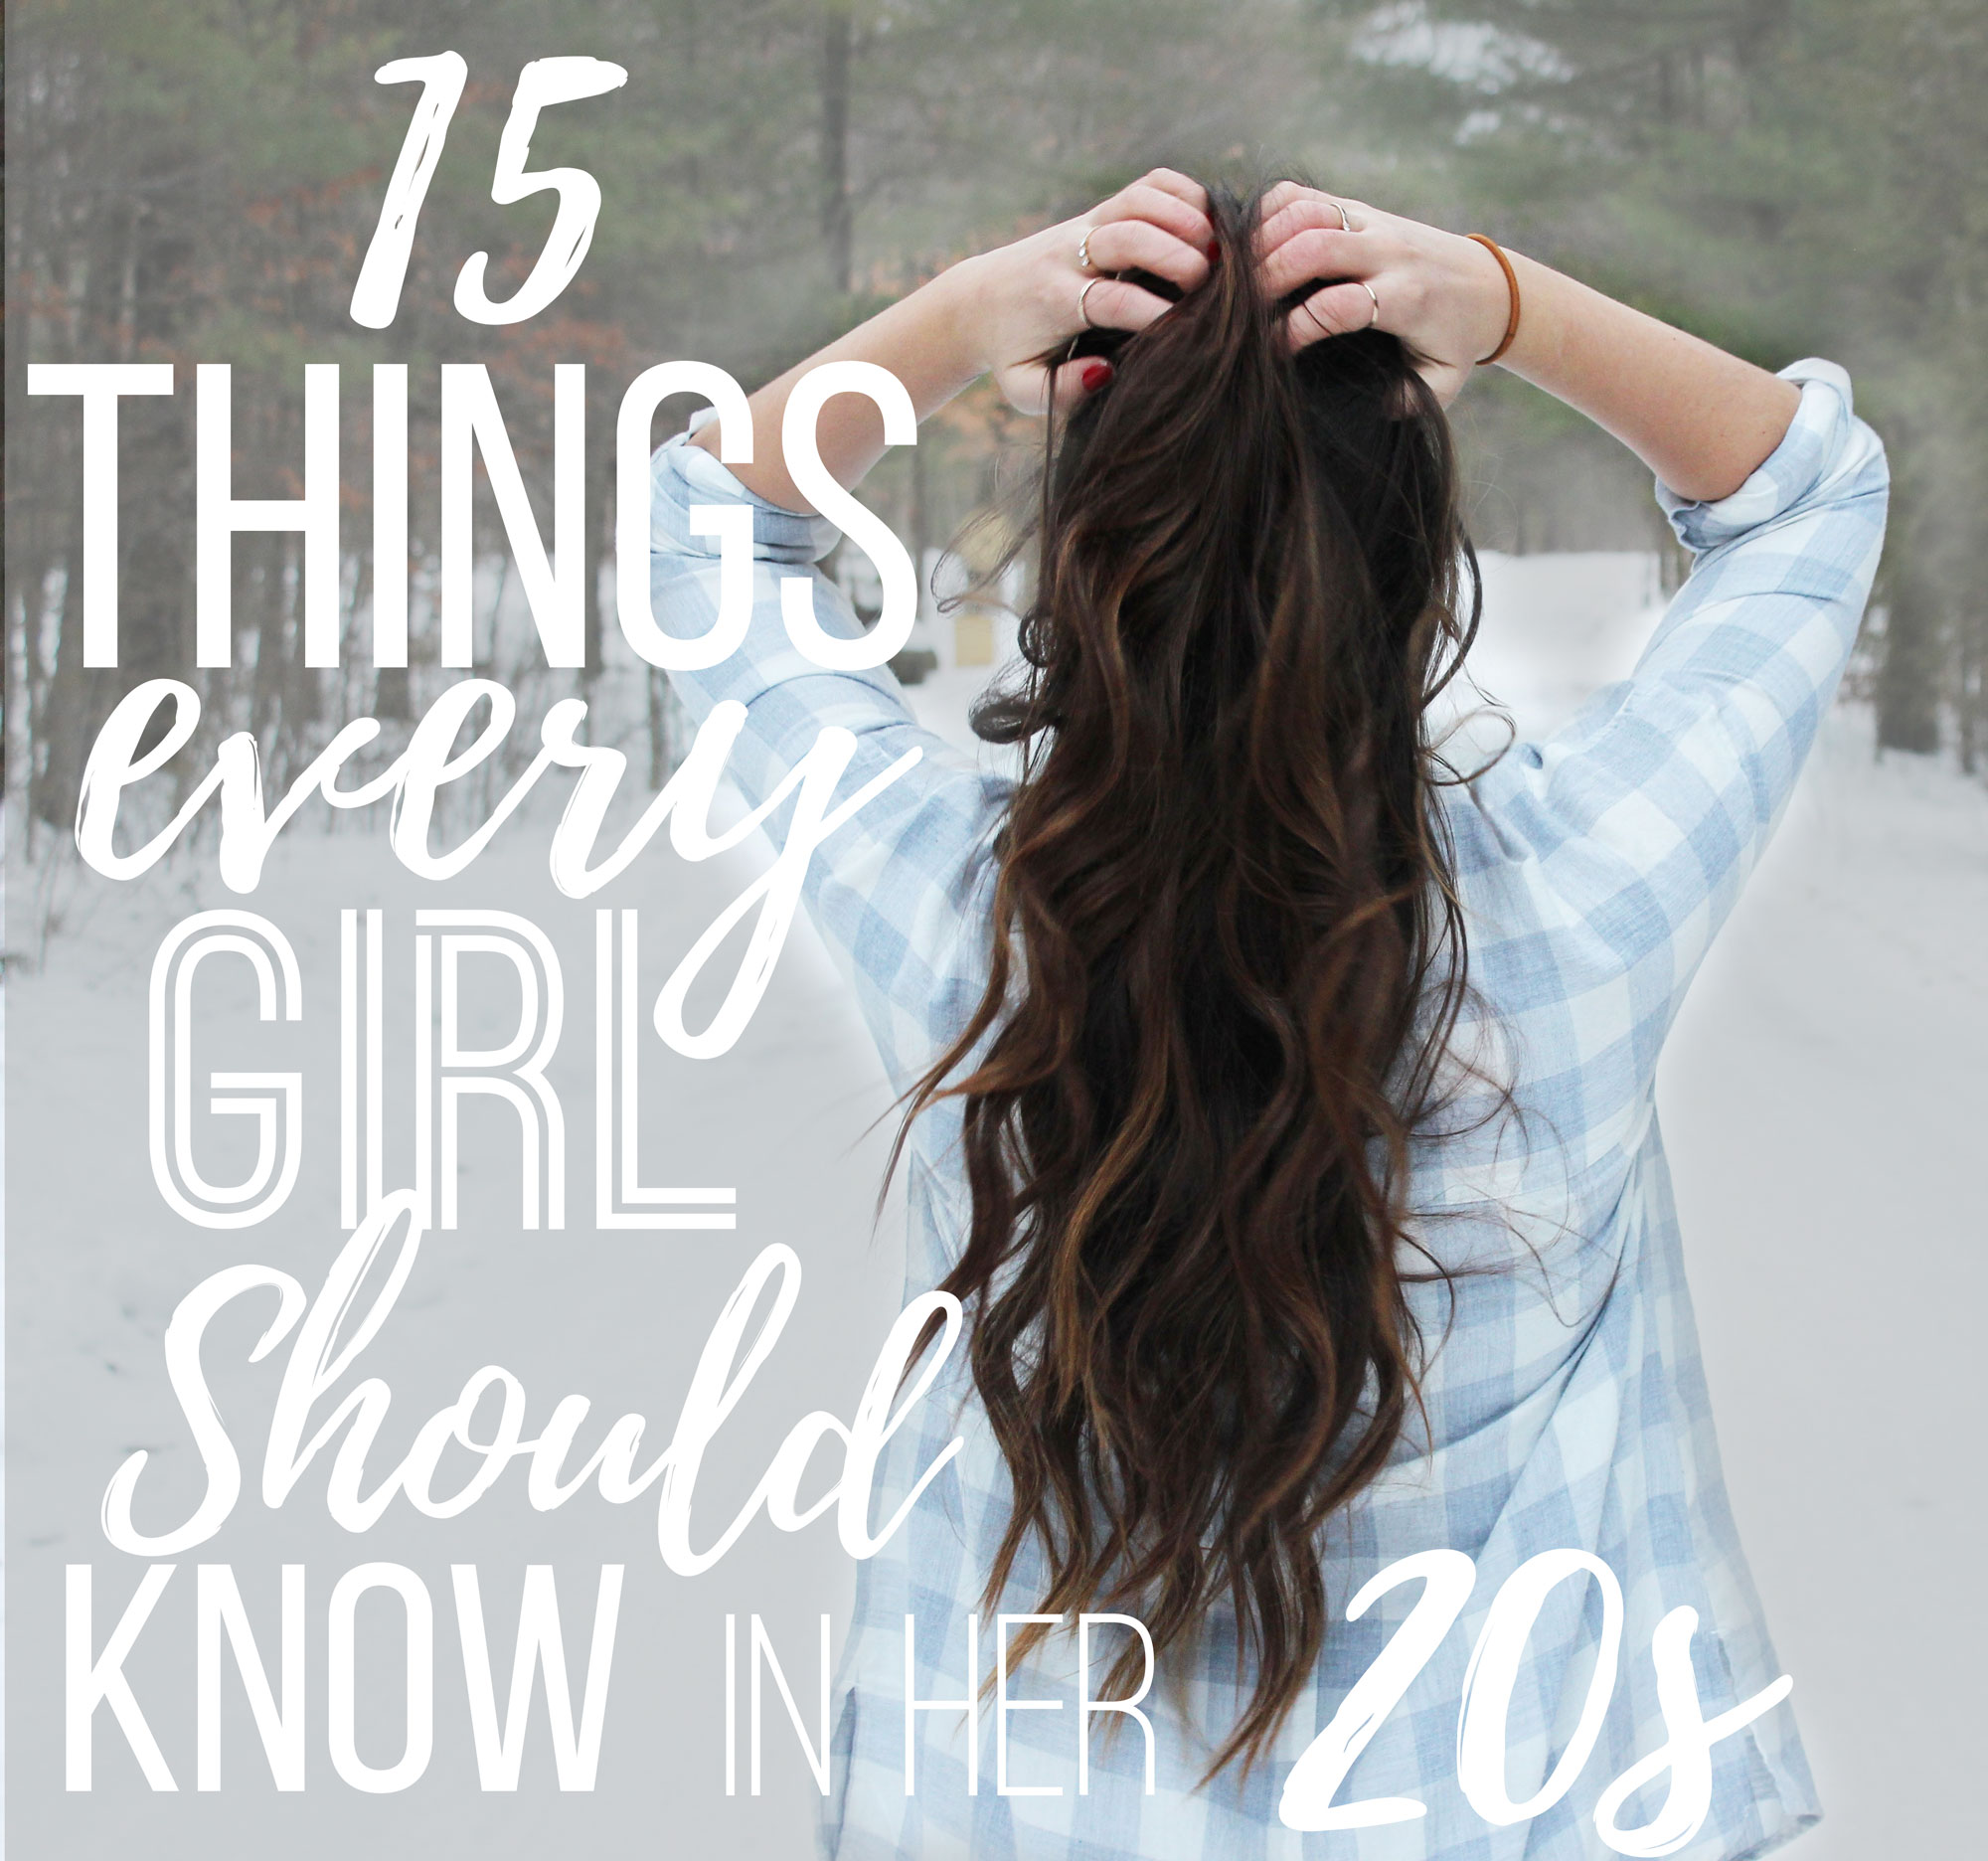 15 Things Every Girl Should Know In Her 20s